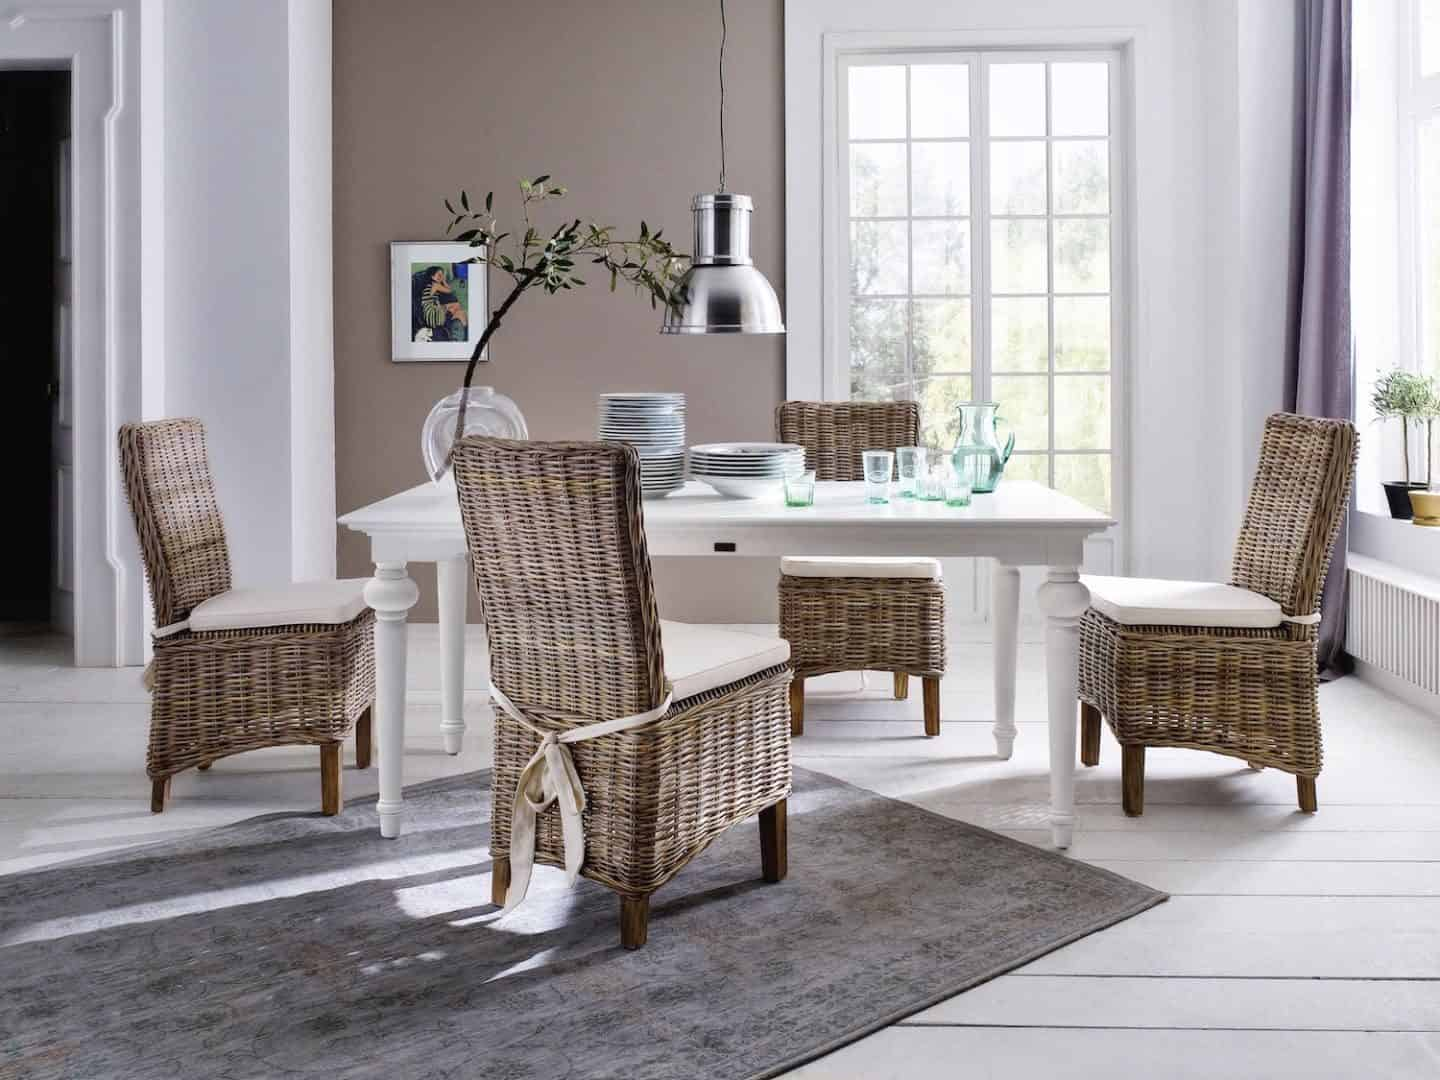 New Nordic interior featuring white floor boards, rattan furniture  and neutral walls. Furniture from the Provence range from Novasolo